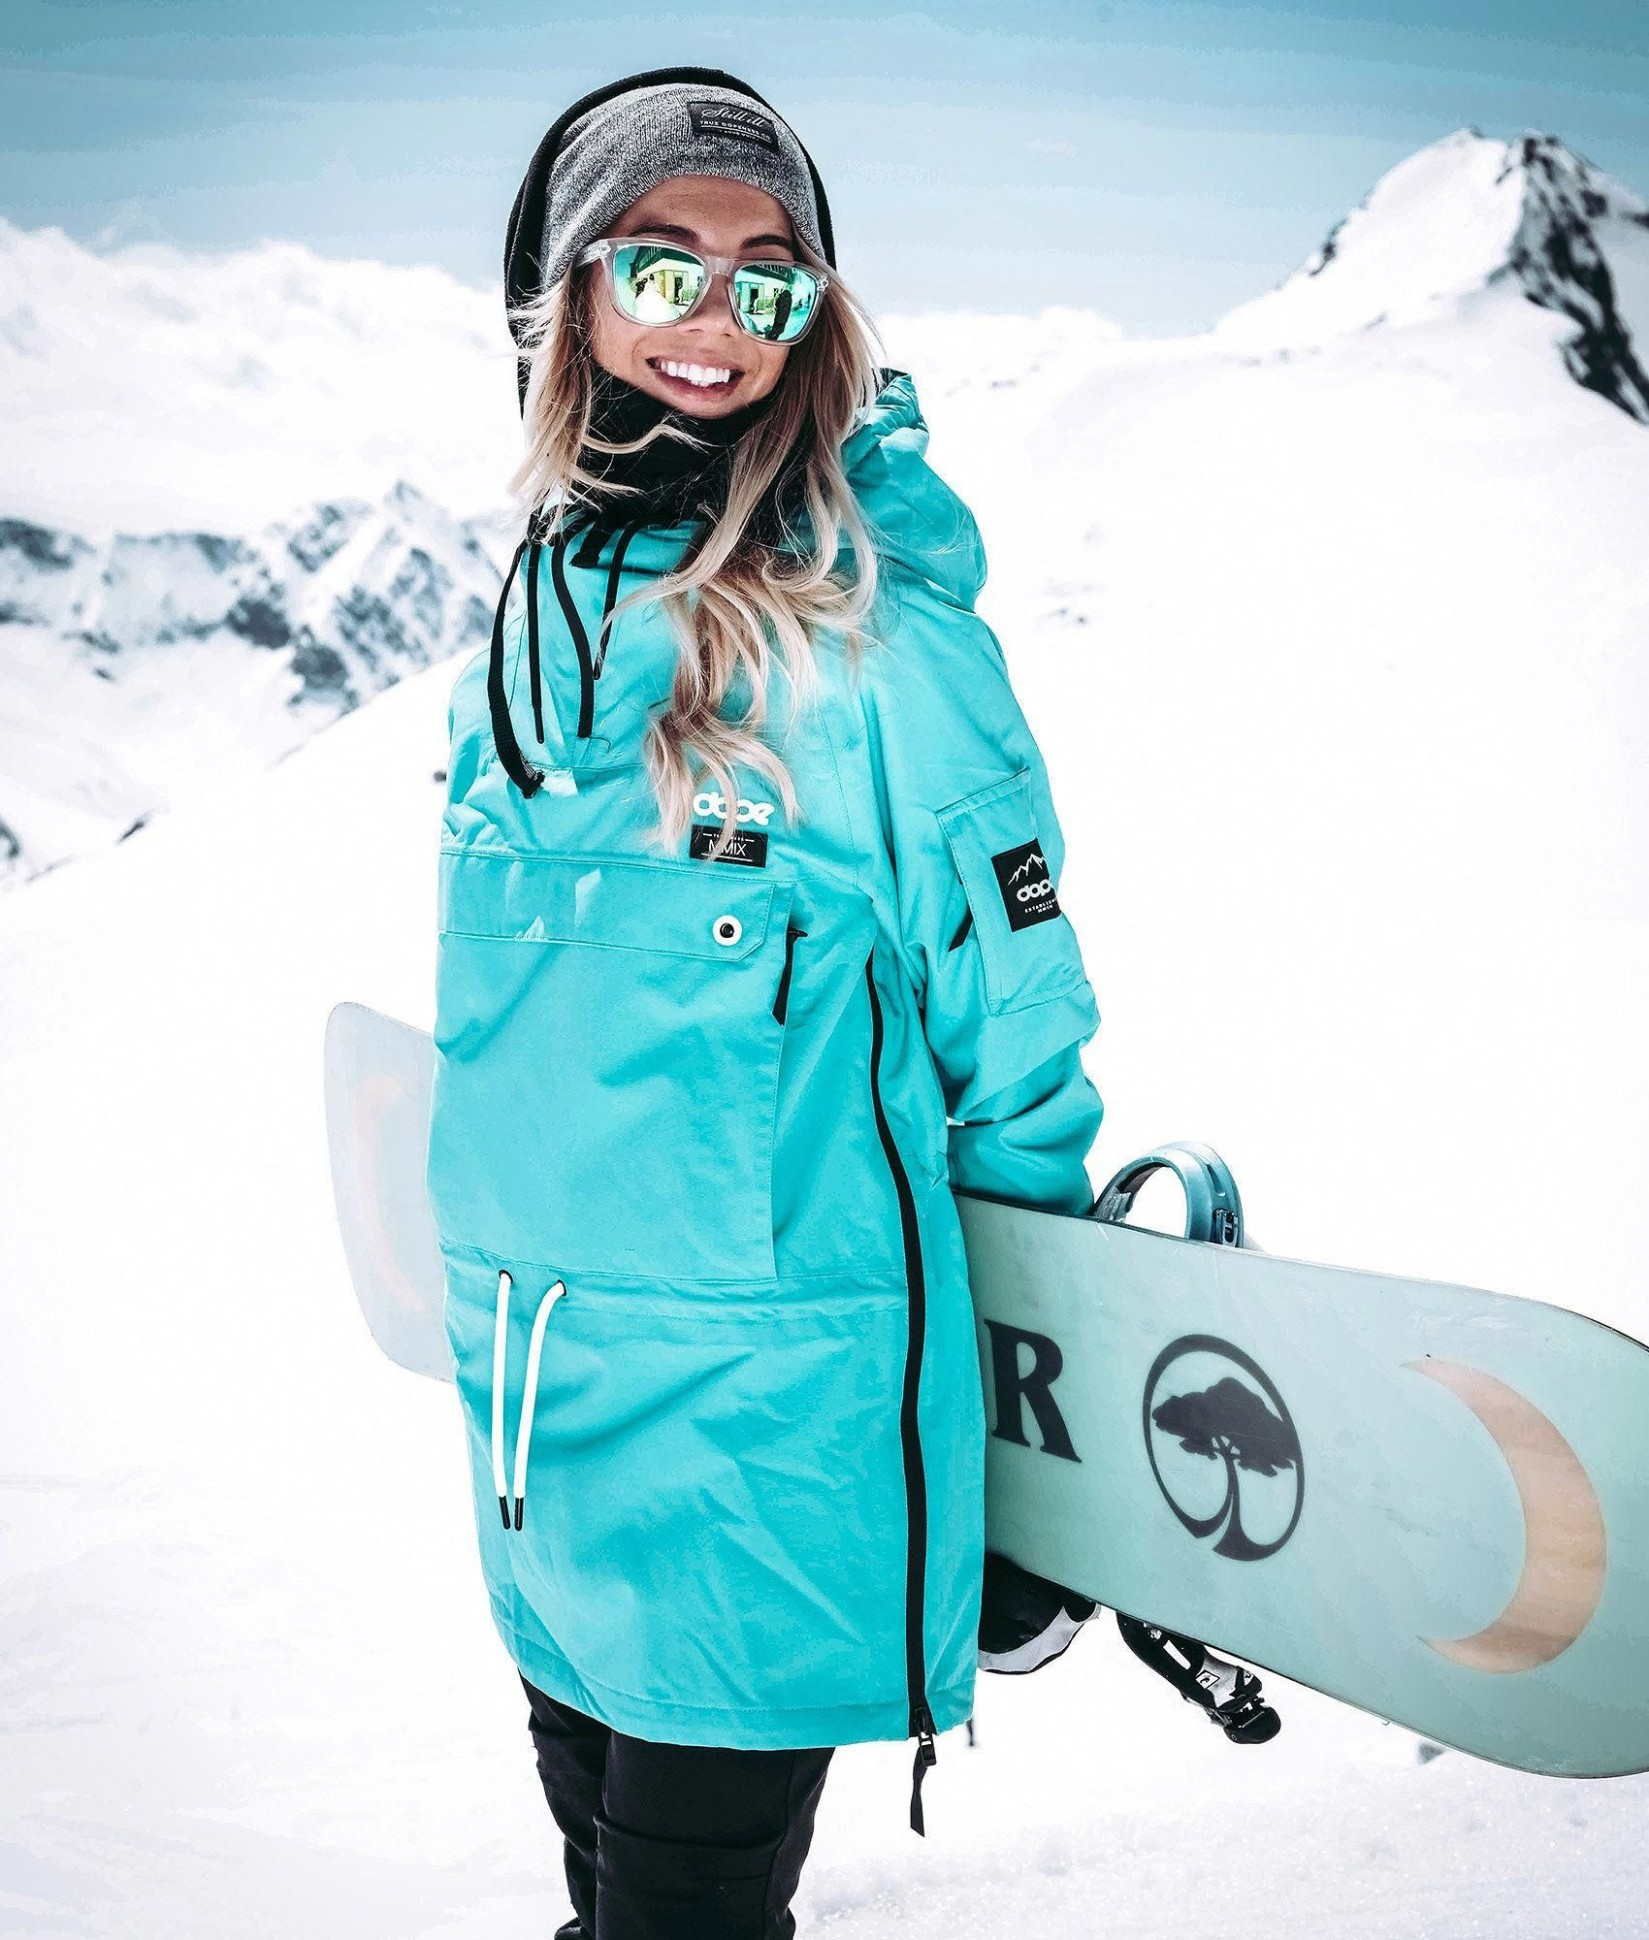 snowboarding gear womens #snowboard outfit skiing outfit snowboard bekleidung damen